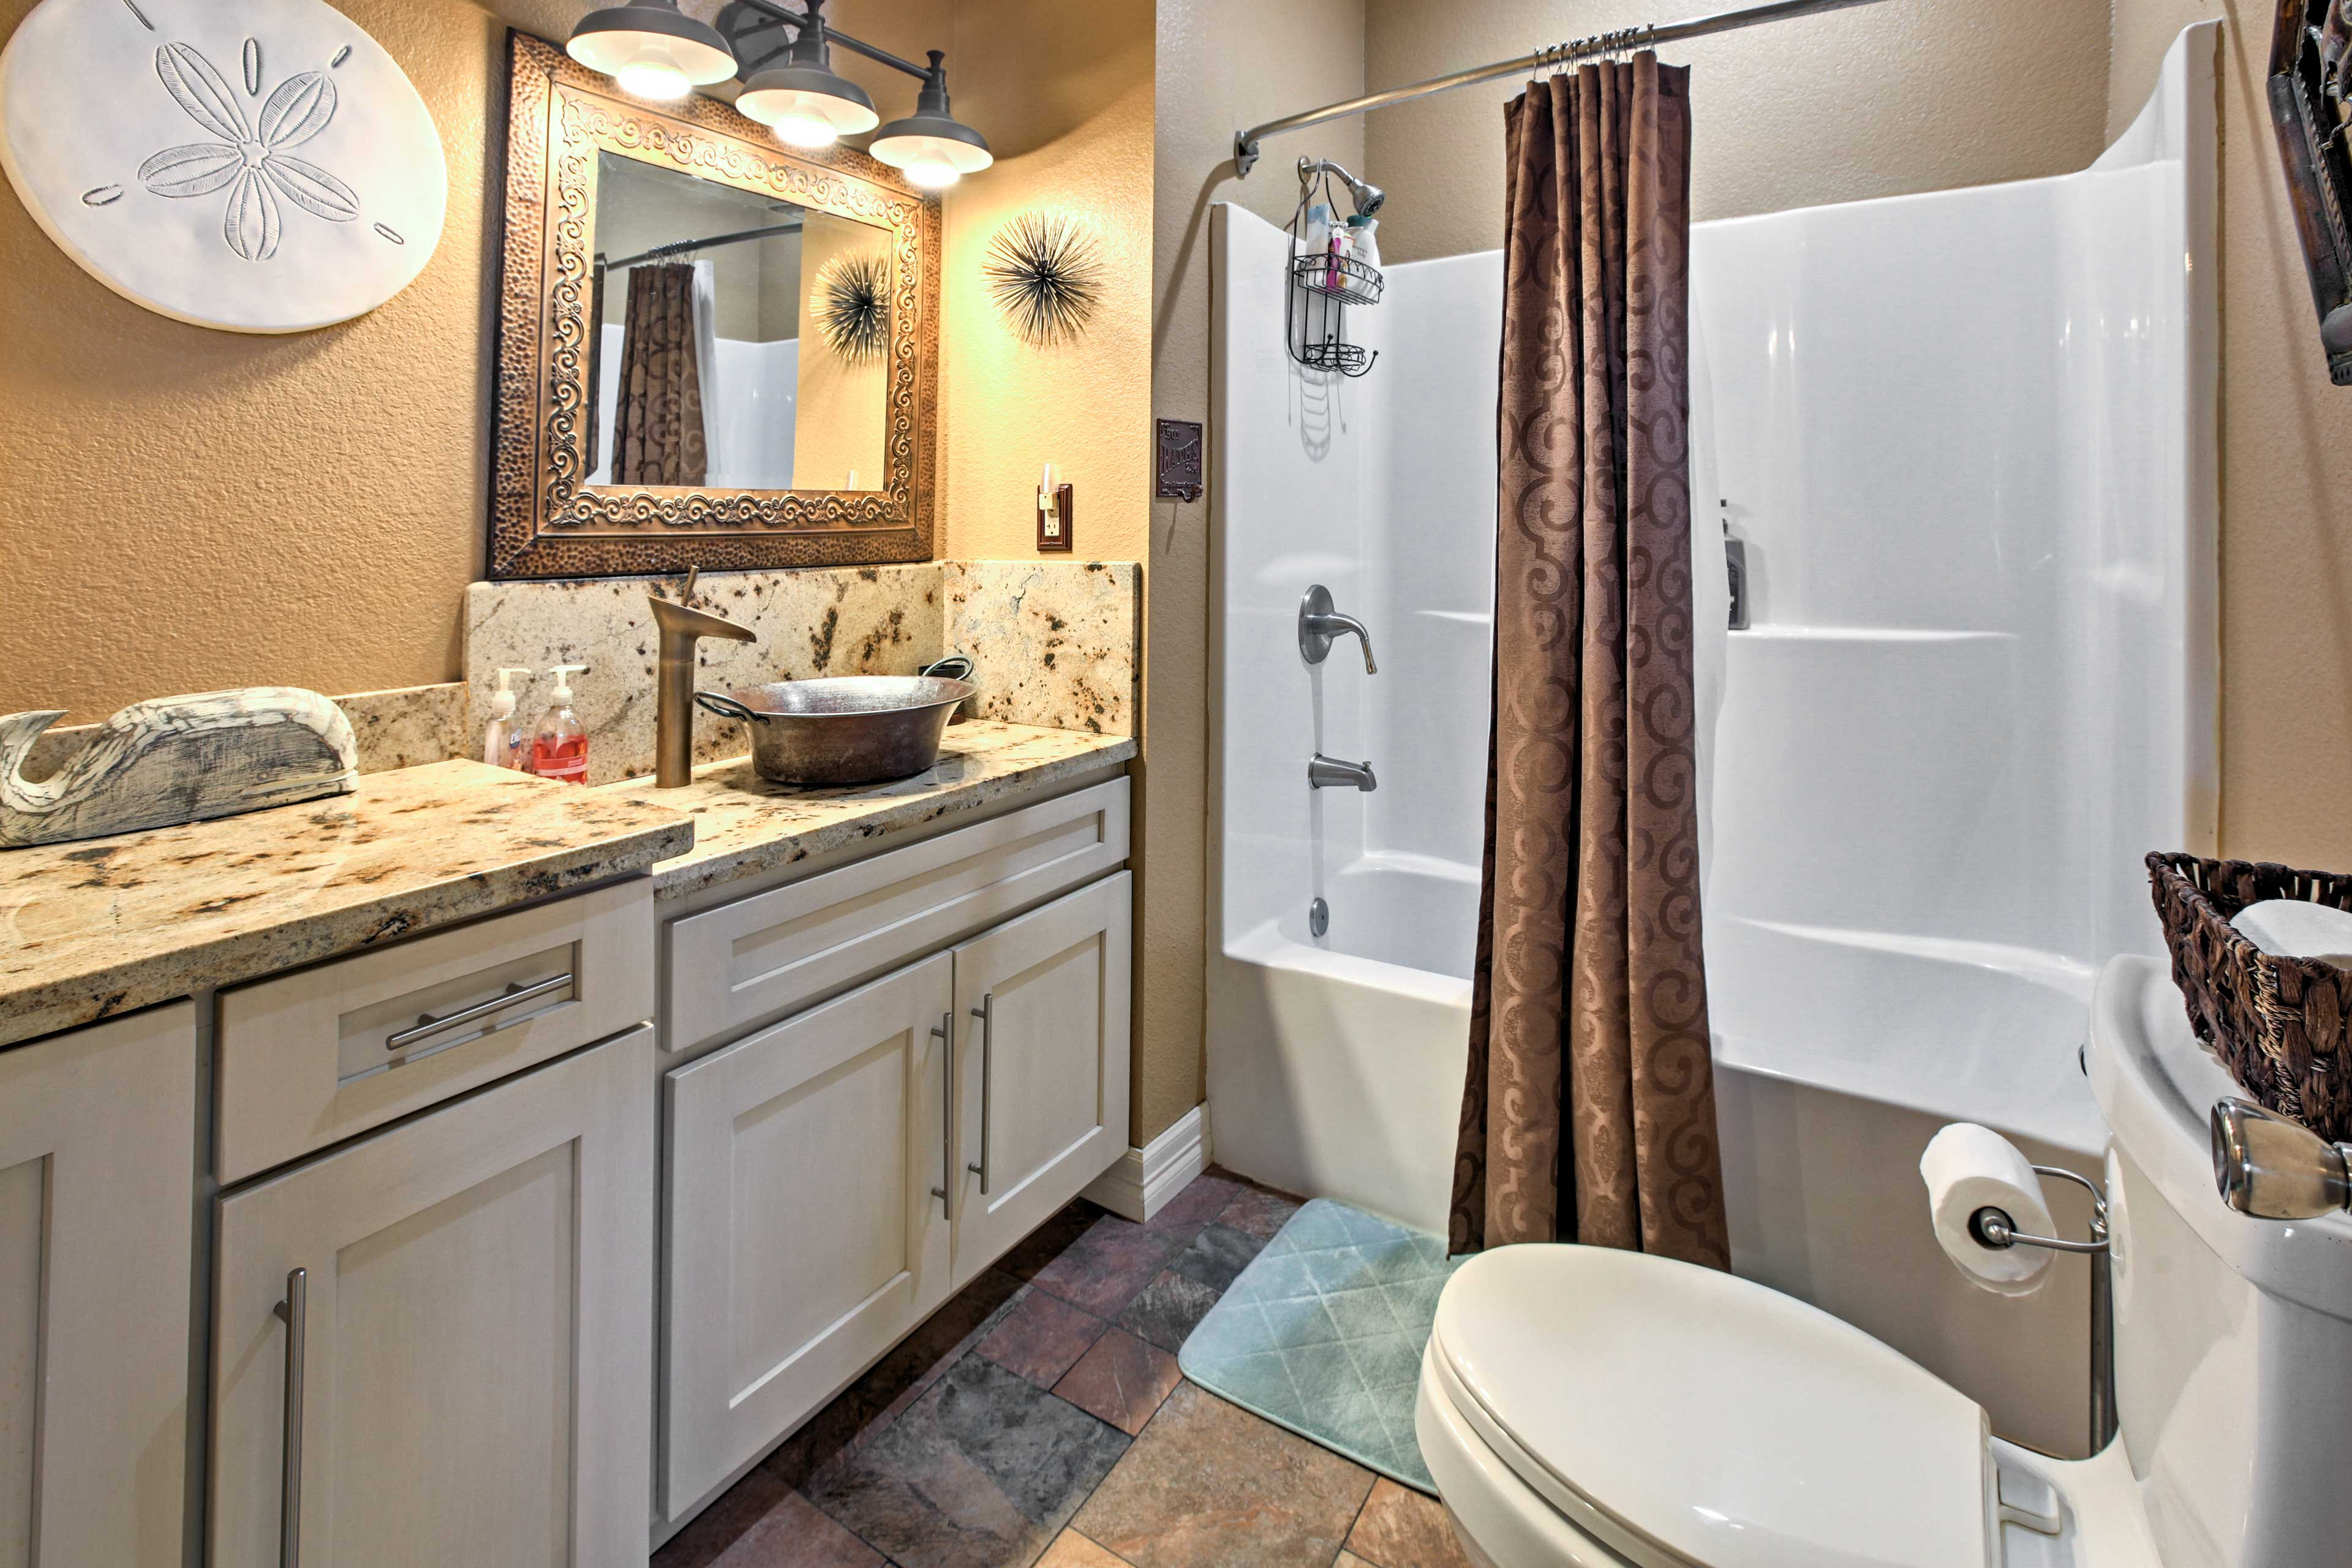 It'll be easy to stick to your morning routine in this upgraded bathroom.